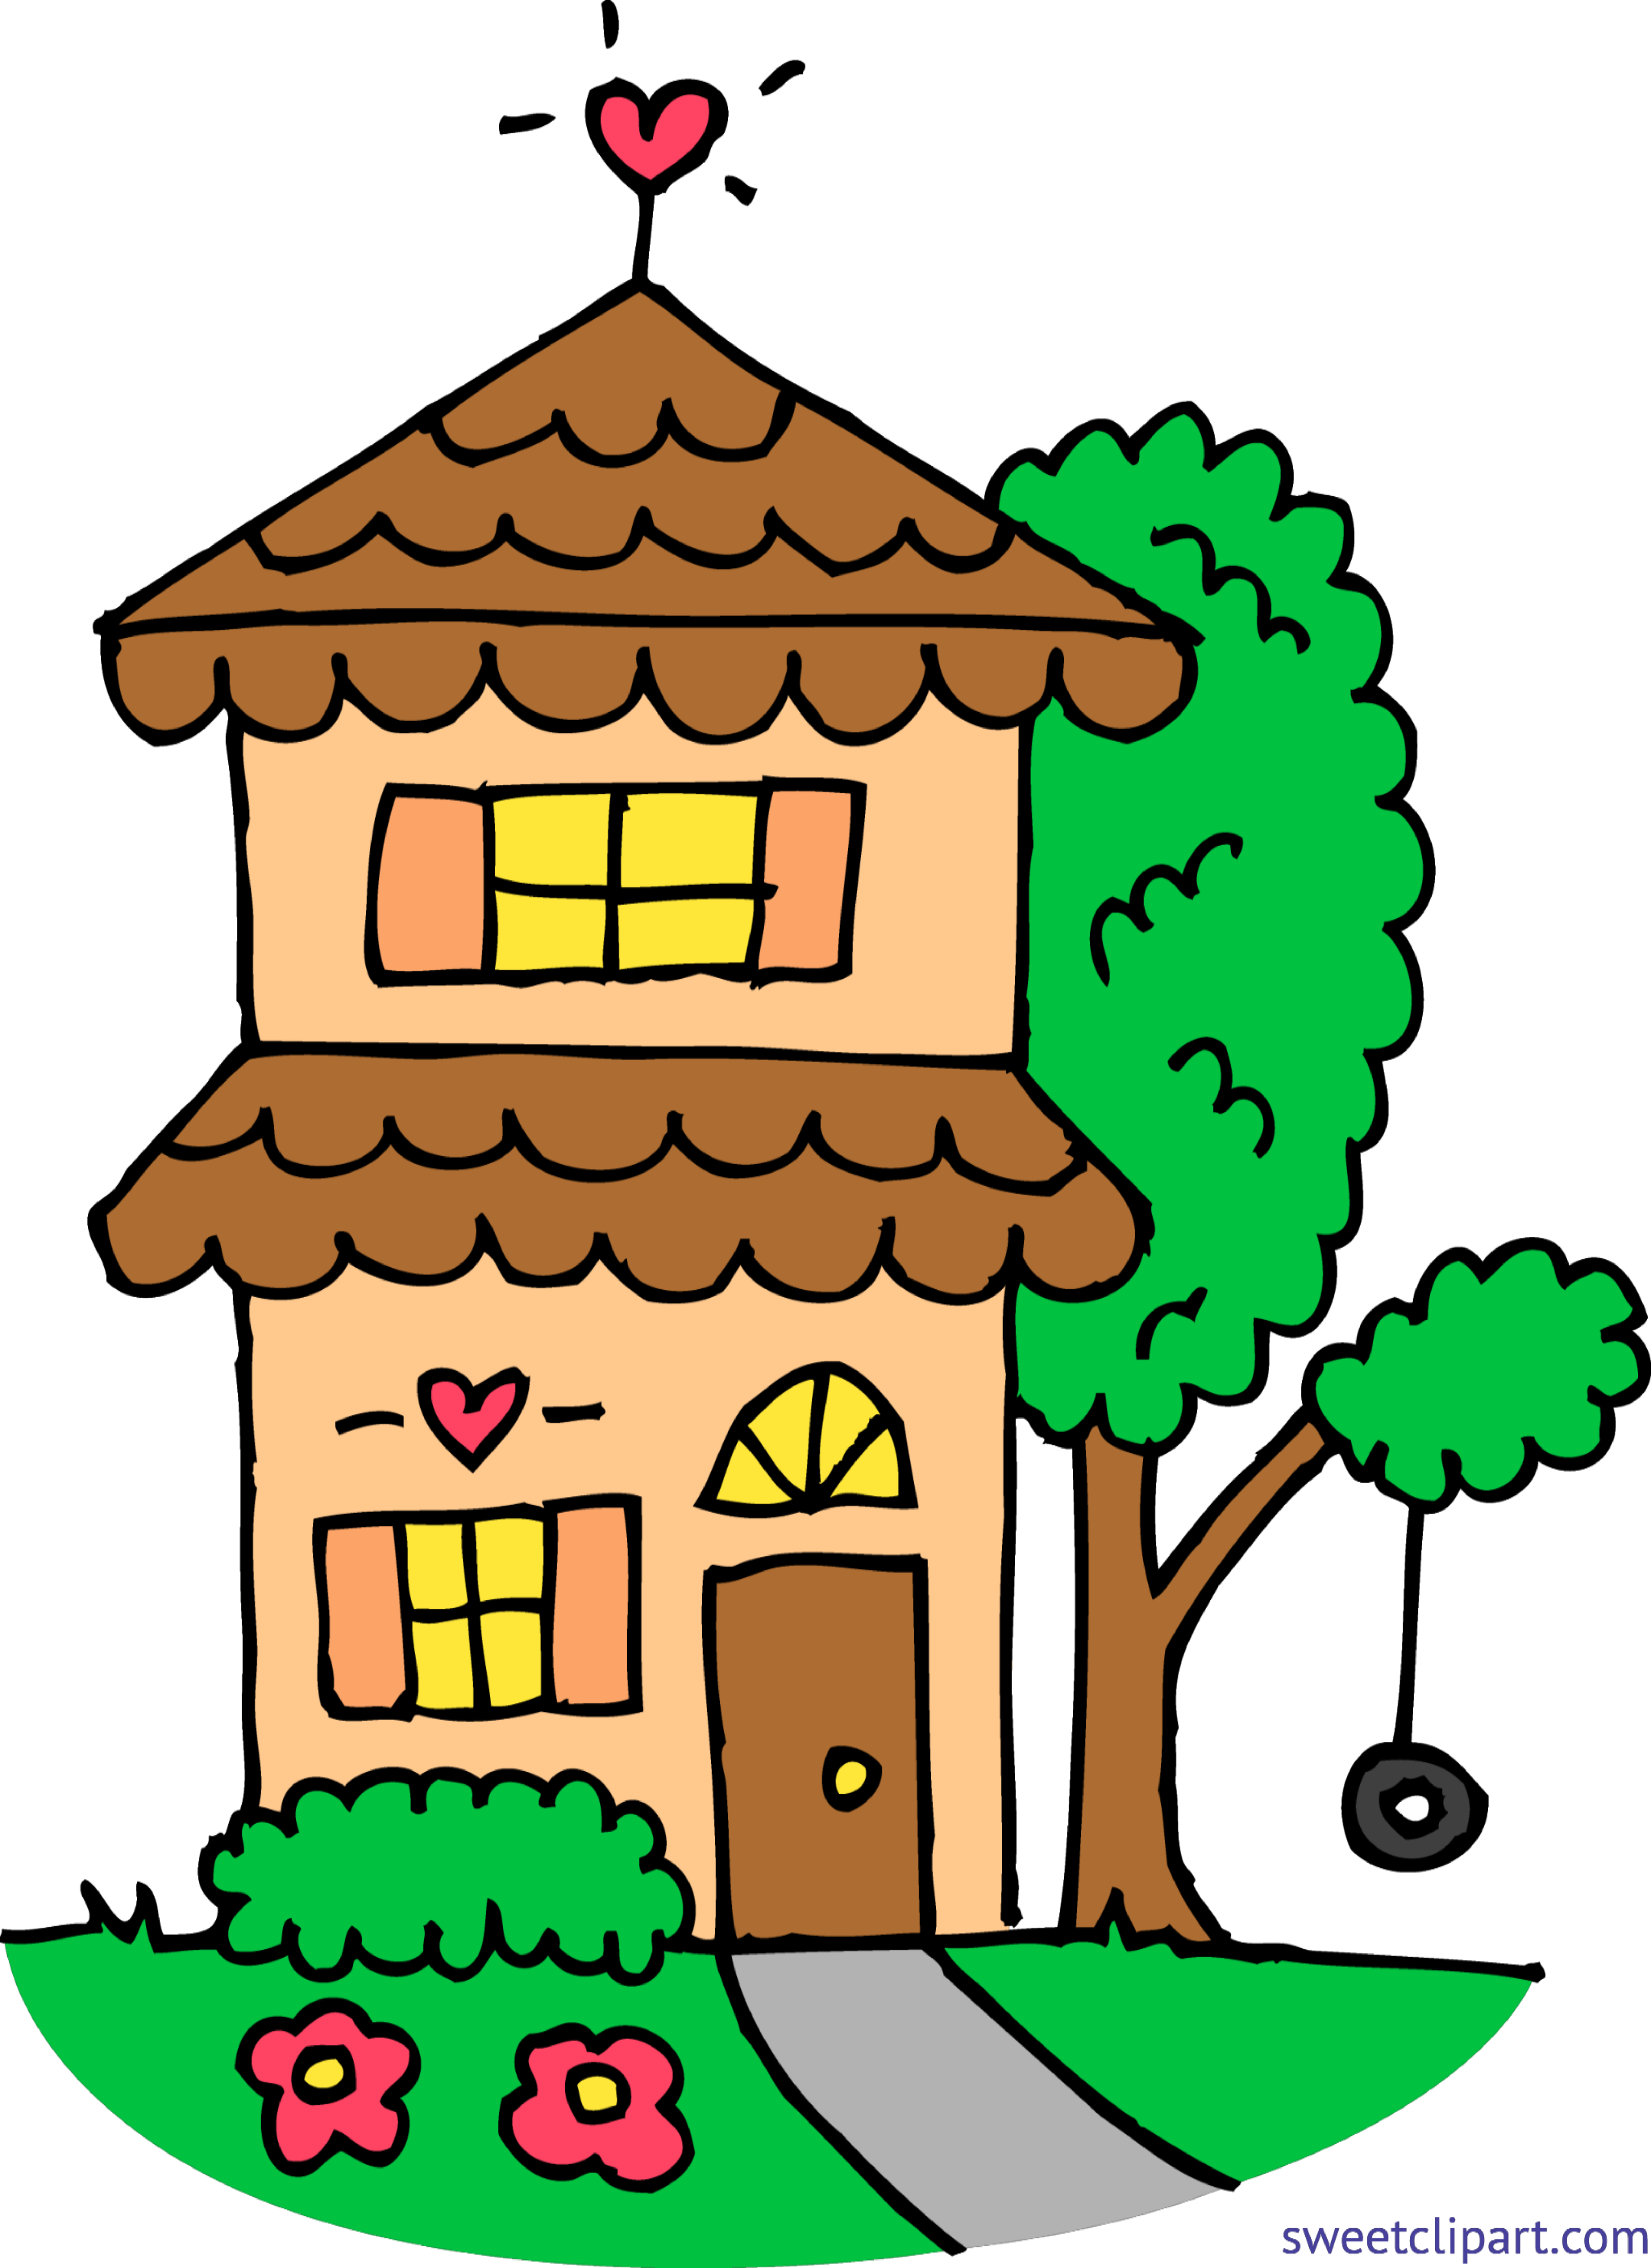 Two story house clipart png picture transparent download Cute Orange Two Story House Clip Art - Sweet Clip Art picture transparent download